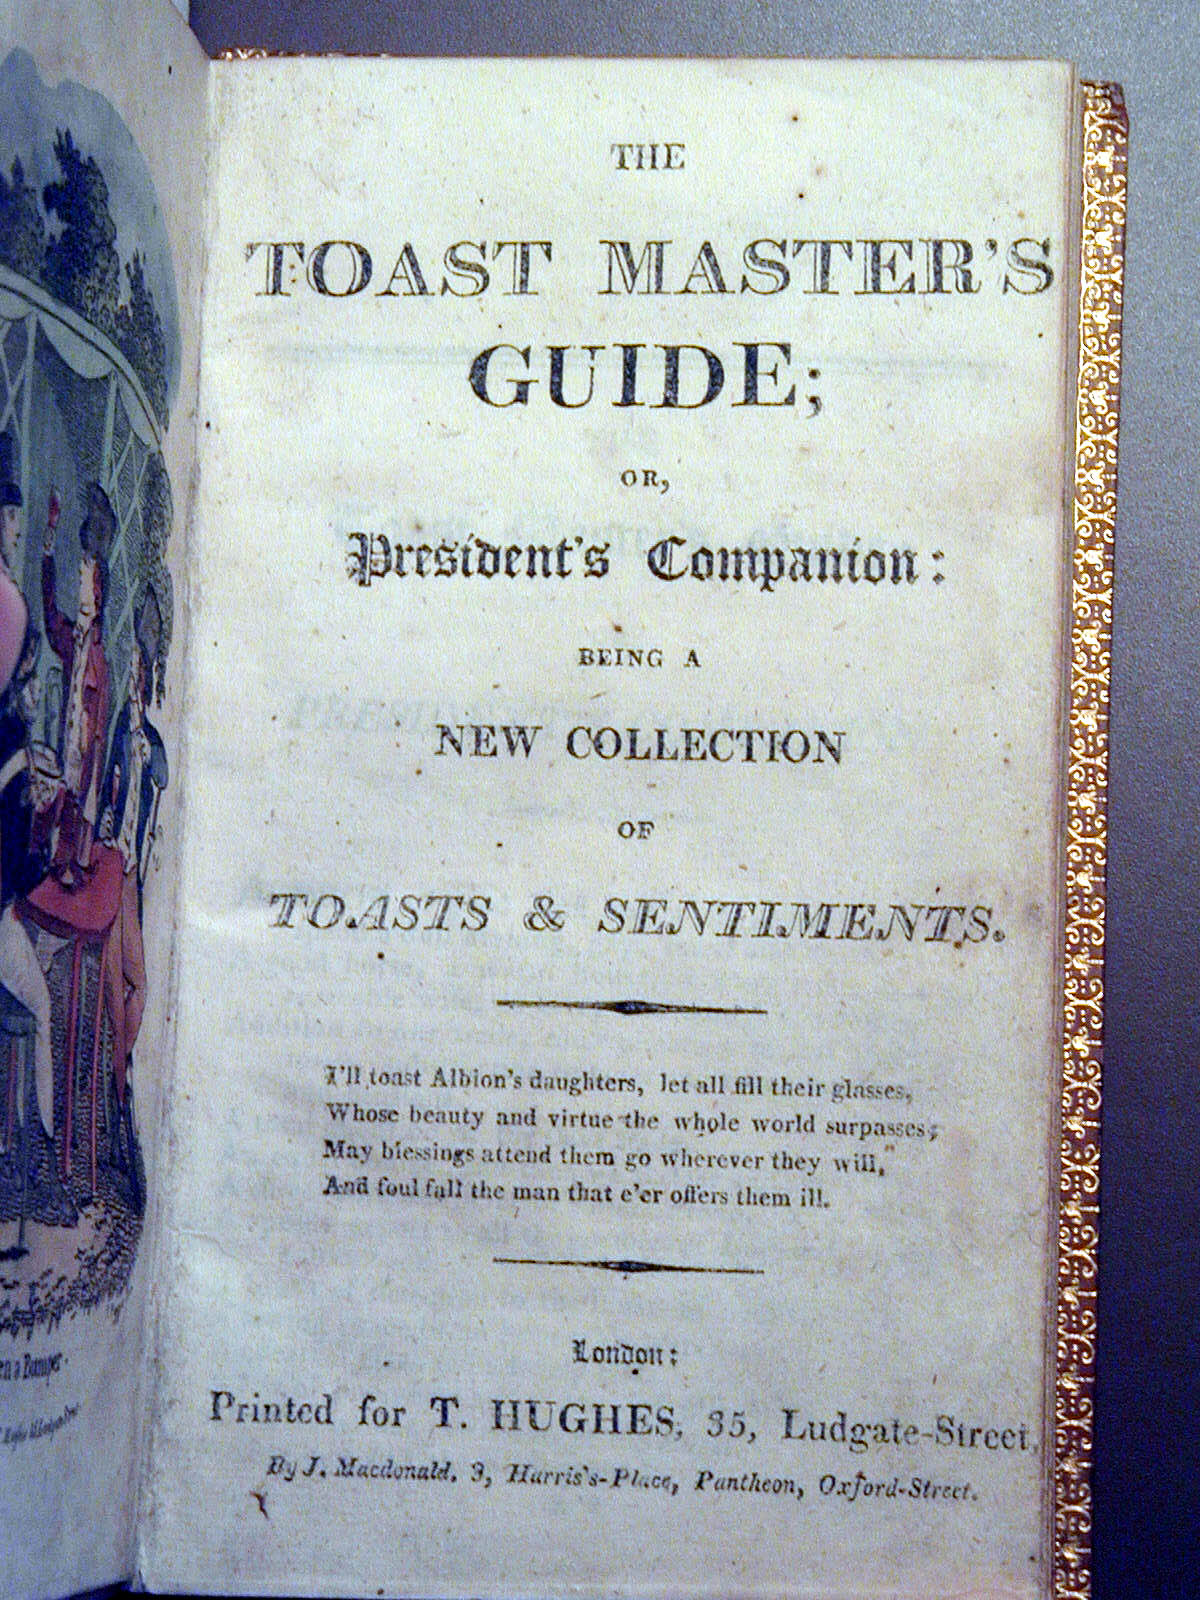 1806_toast_masters_guide_02_title_page.jpg